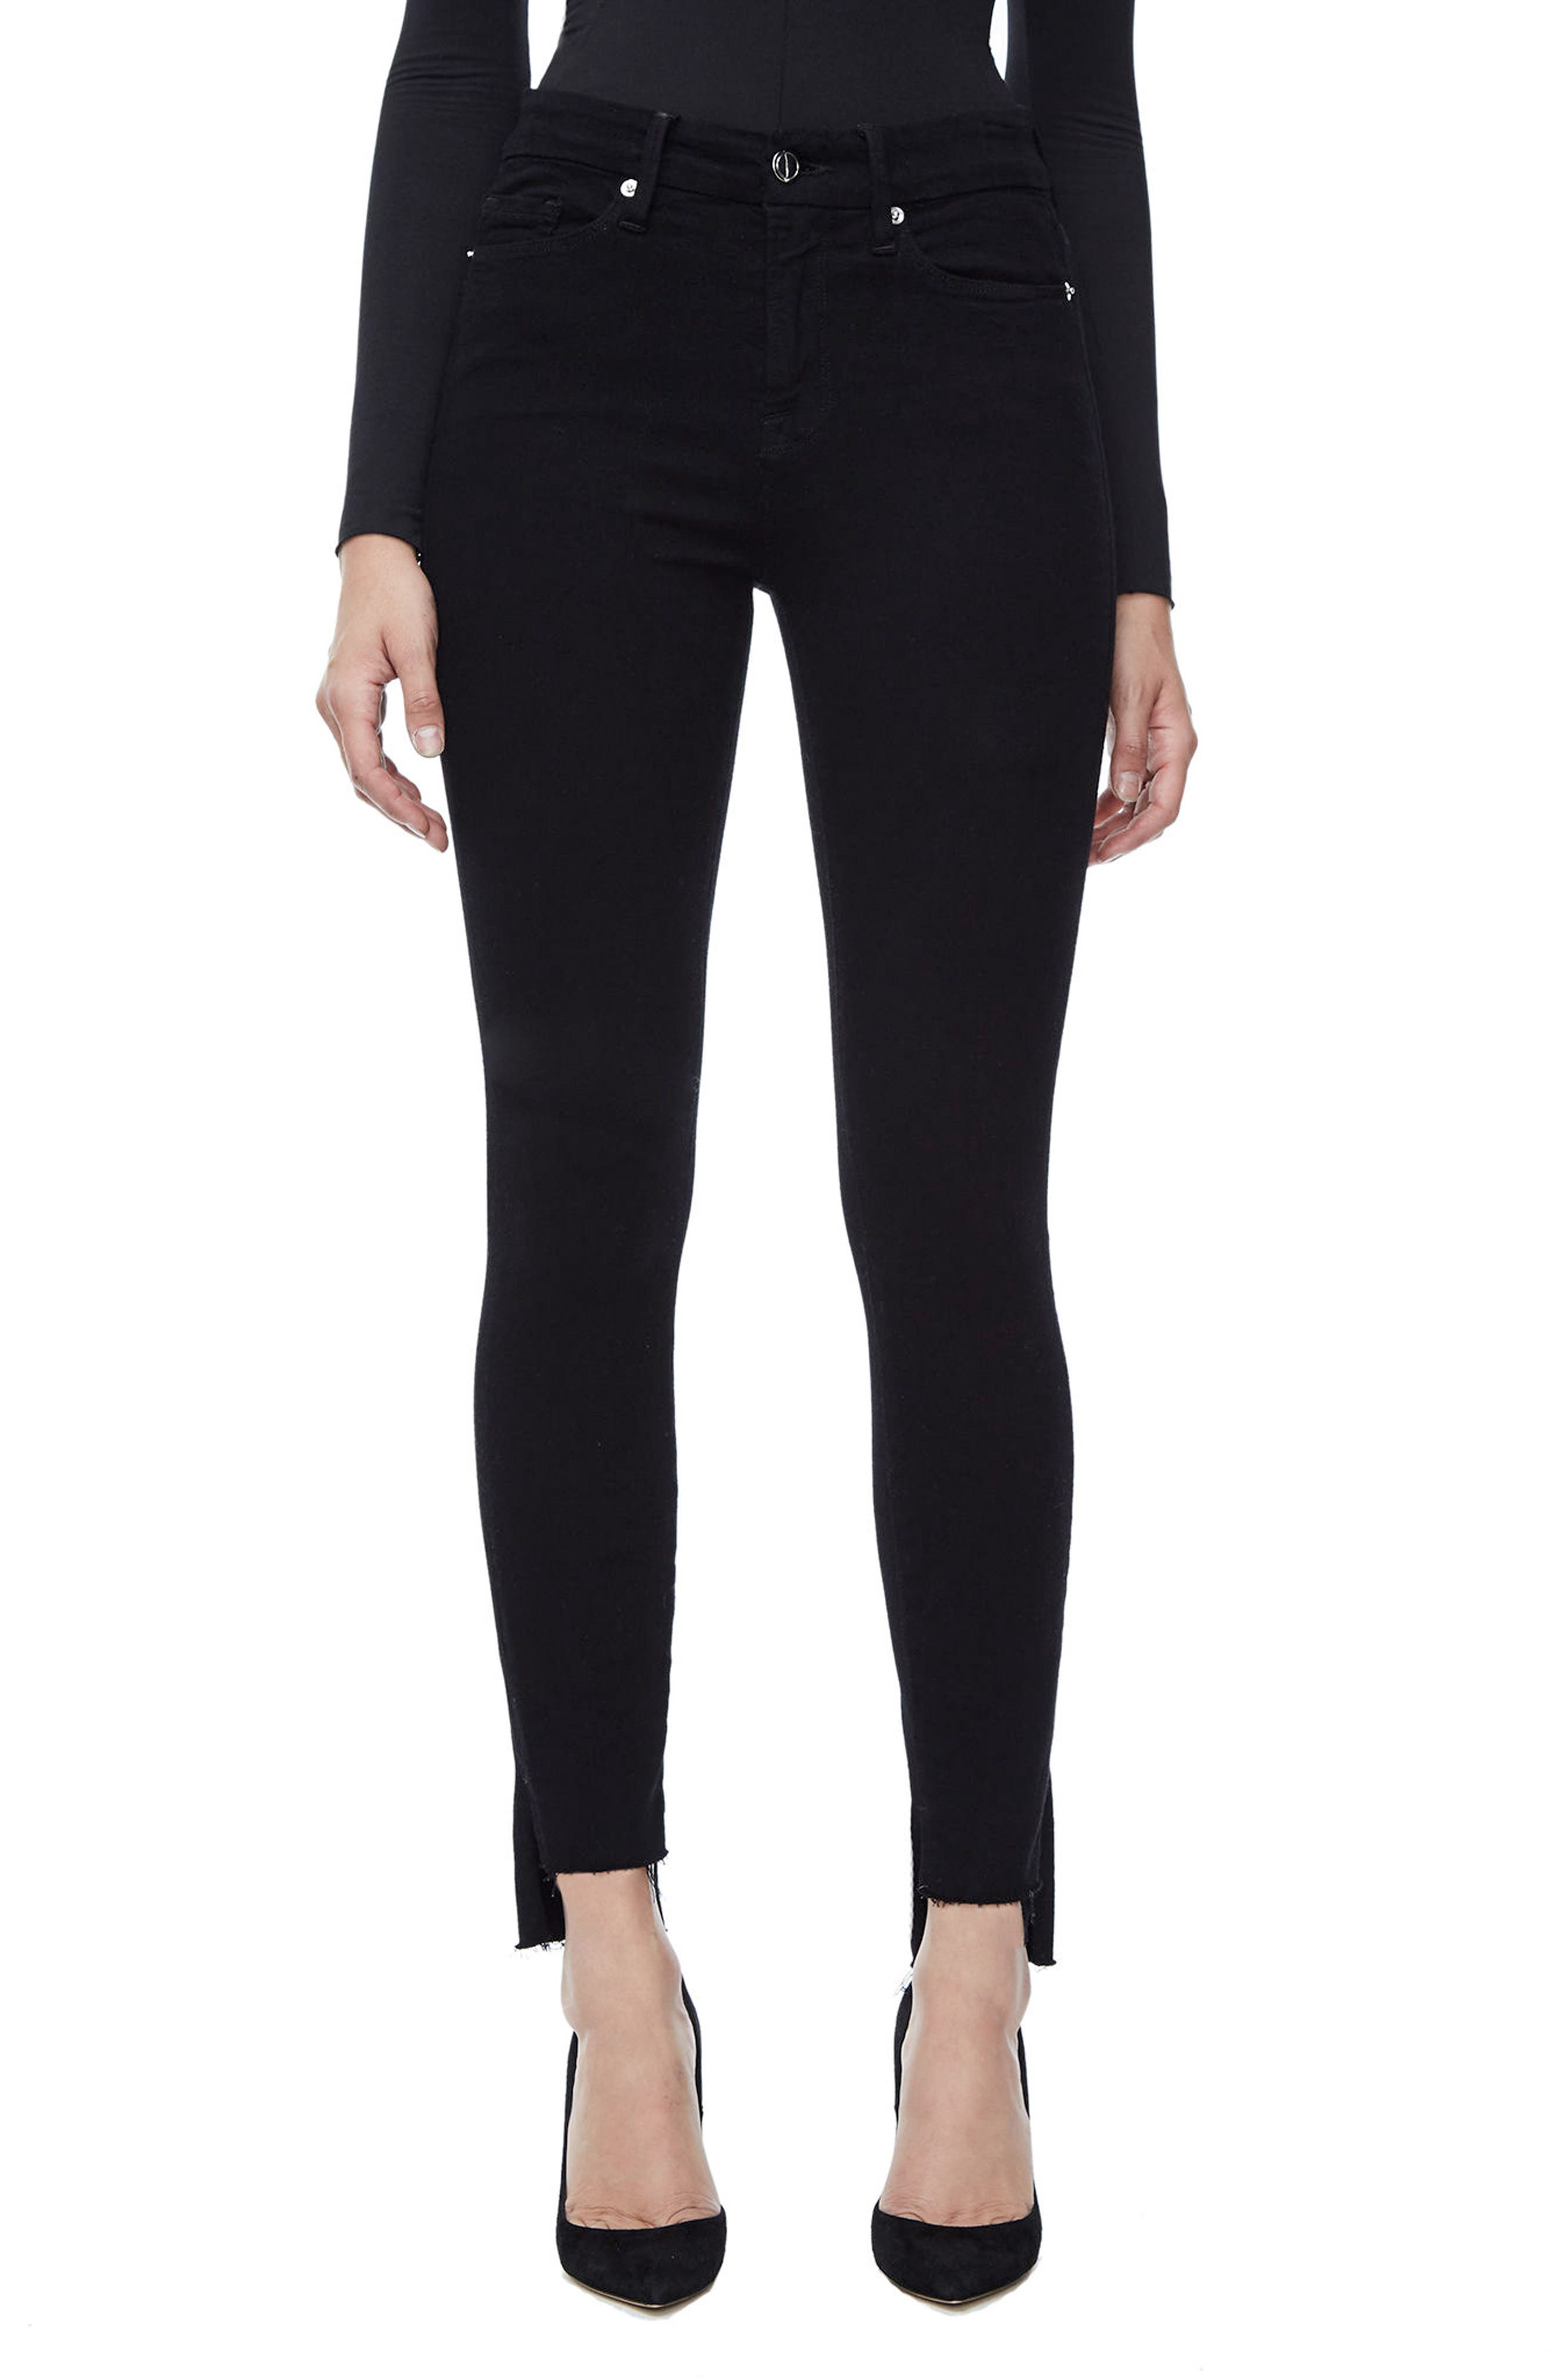 Alternate Image 1 Selected - Good American Good Legs High Waist Skinny Jeans (Black 001) (Extended Sizes)